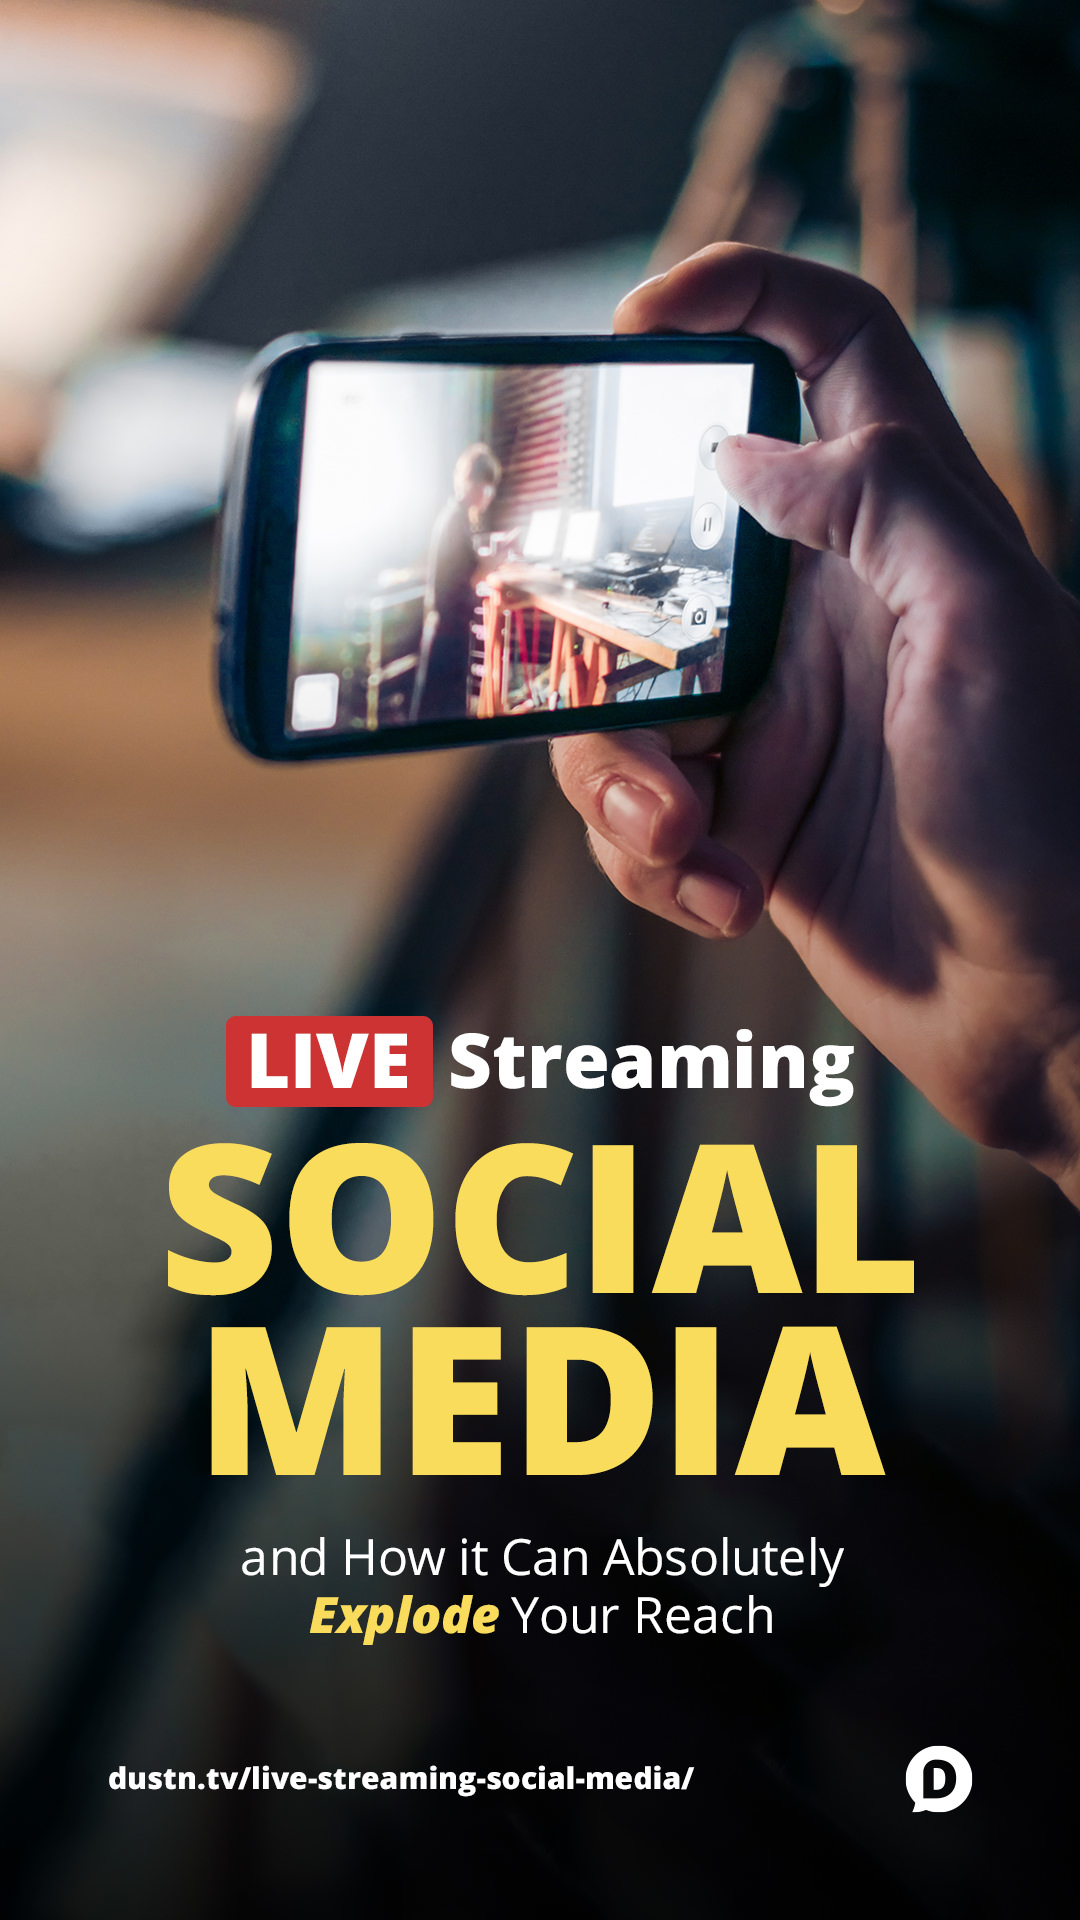 How Live Streaming Social Media Can Explode Your Reach